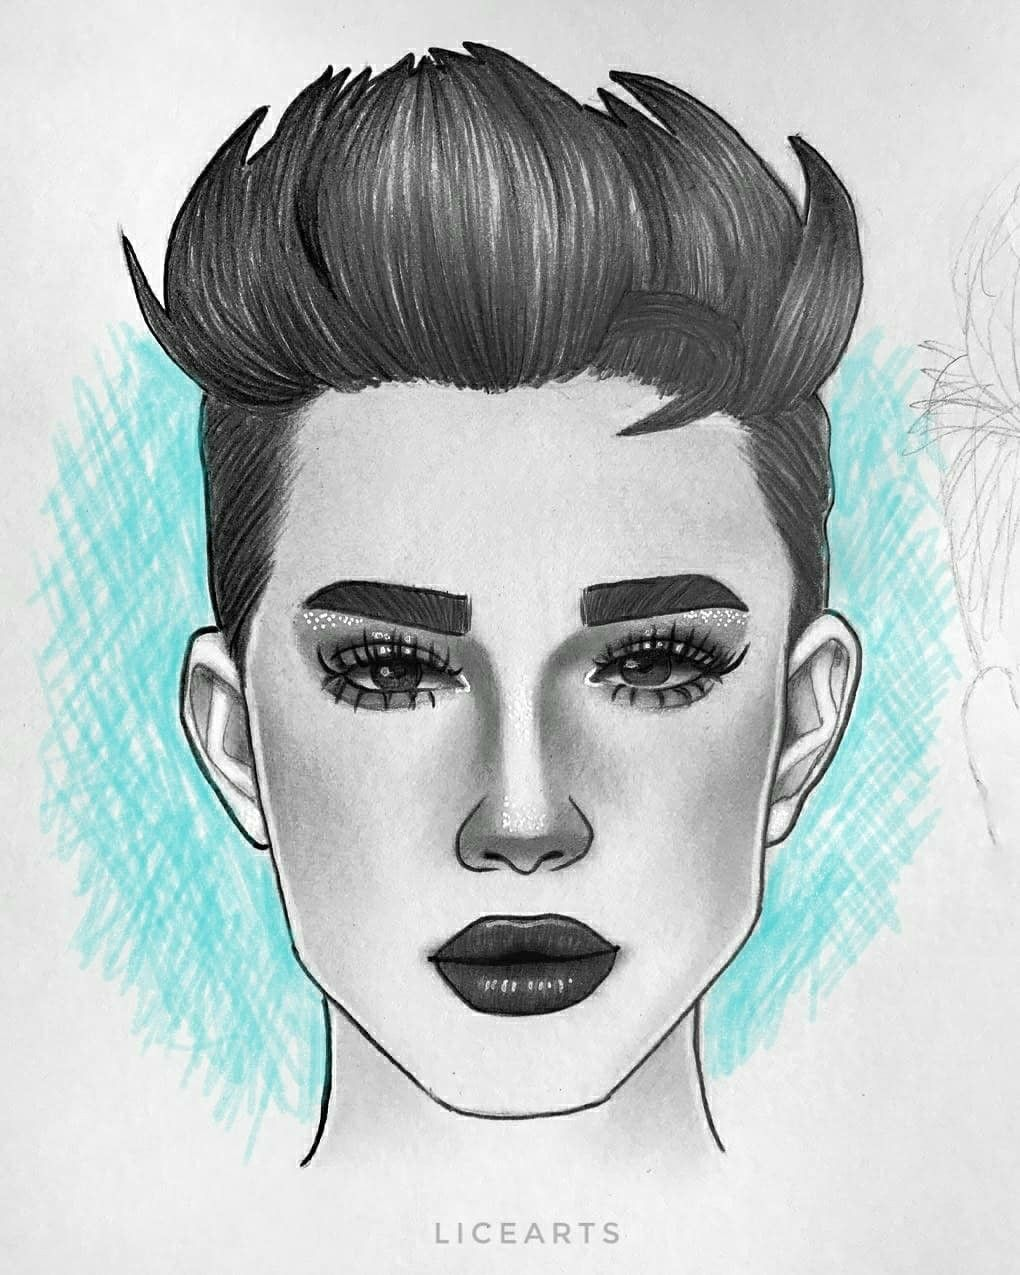 James Charles Drawing Graphite Makeup Look Cool Background With